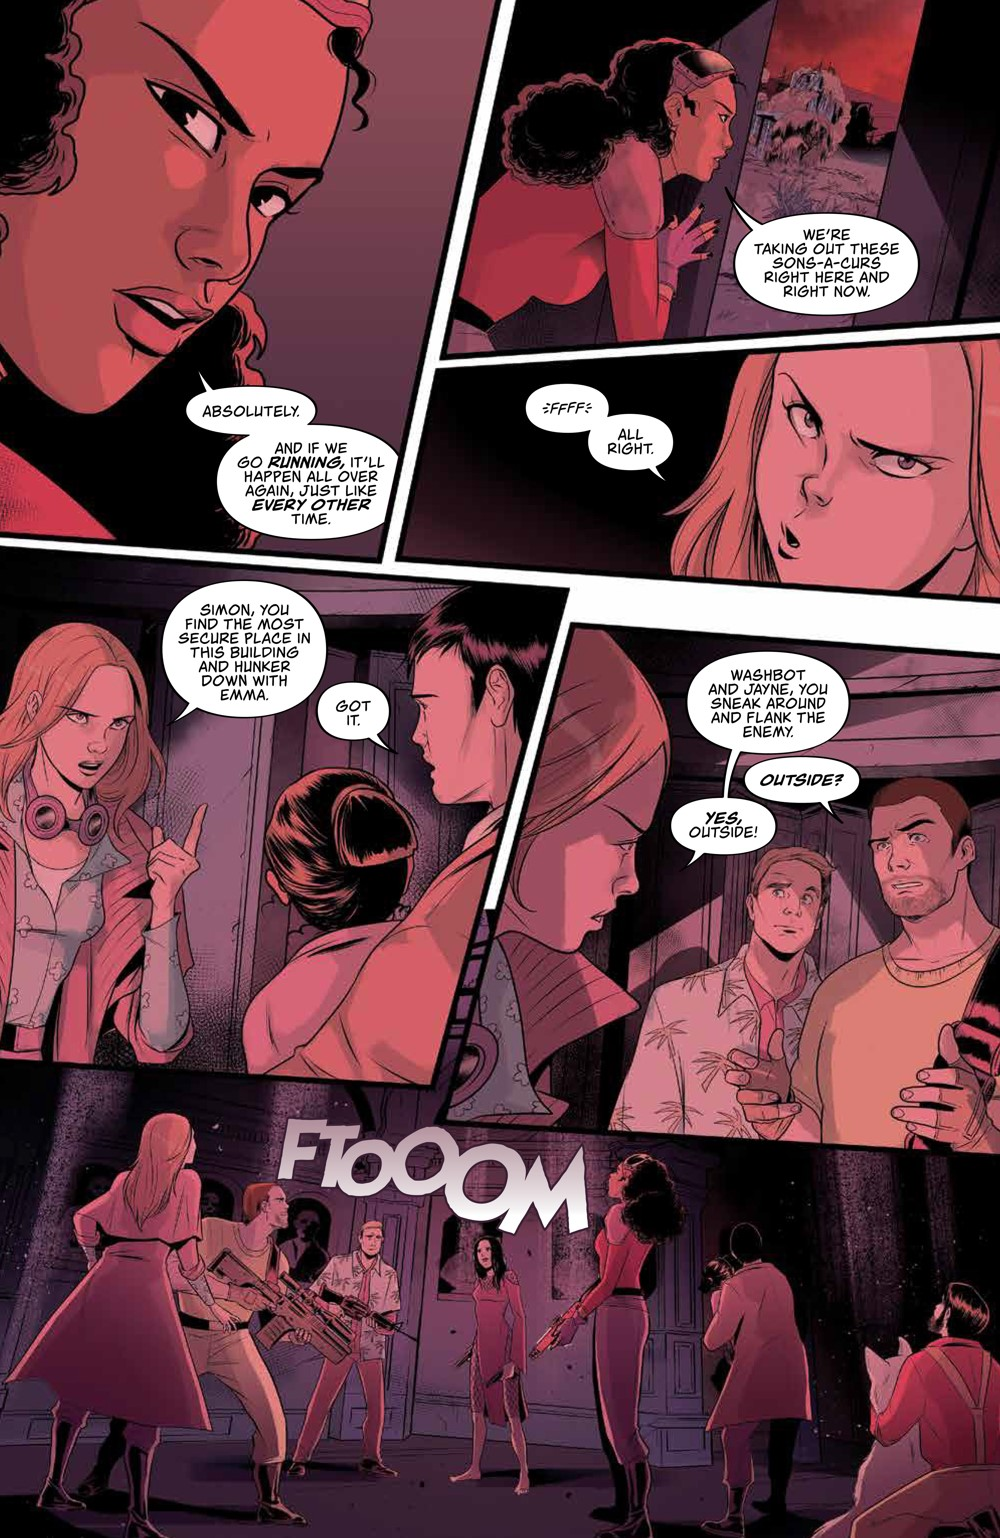 Firefly_030_PRESS_6 ComicList Previews: FIREFLY #30